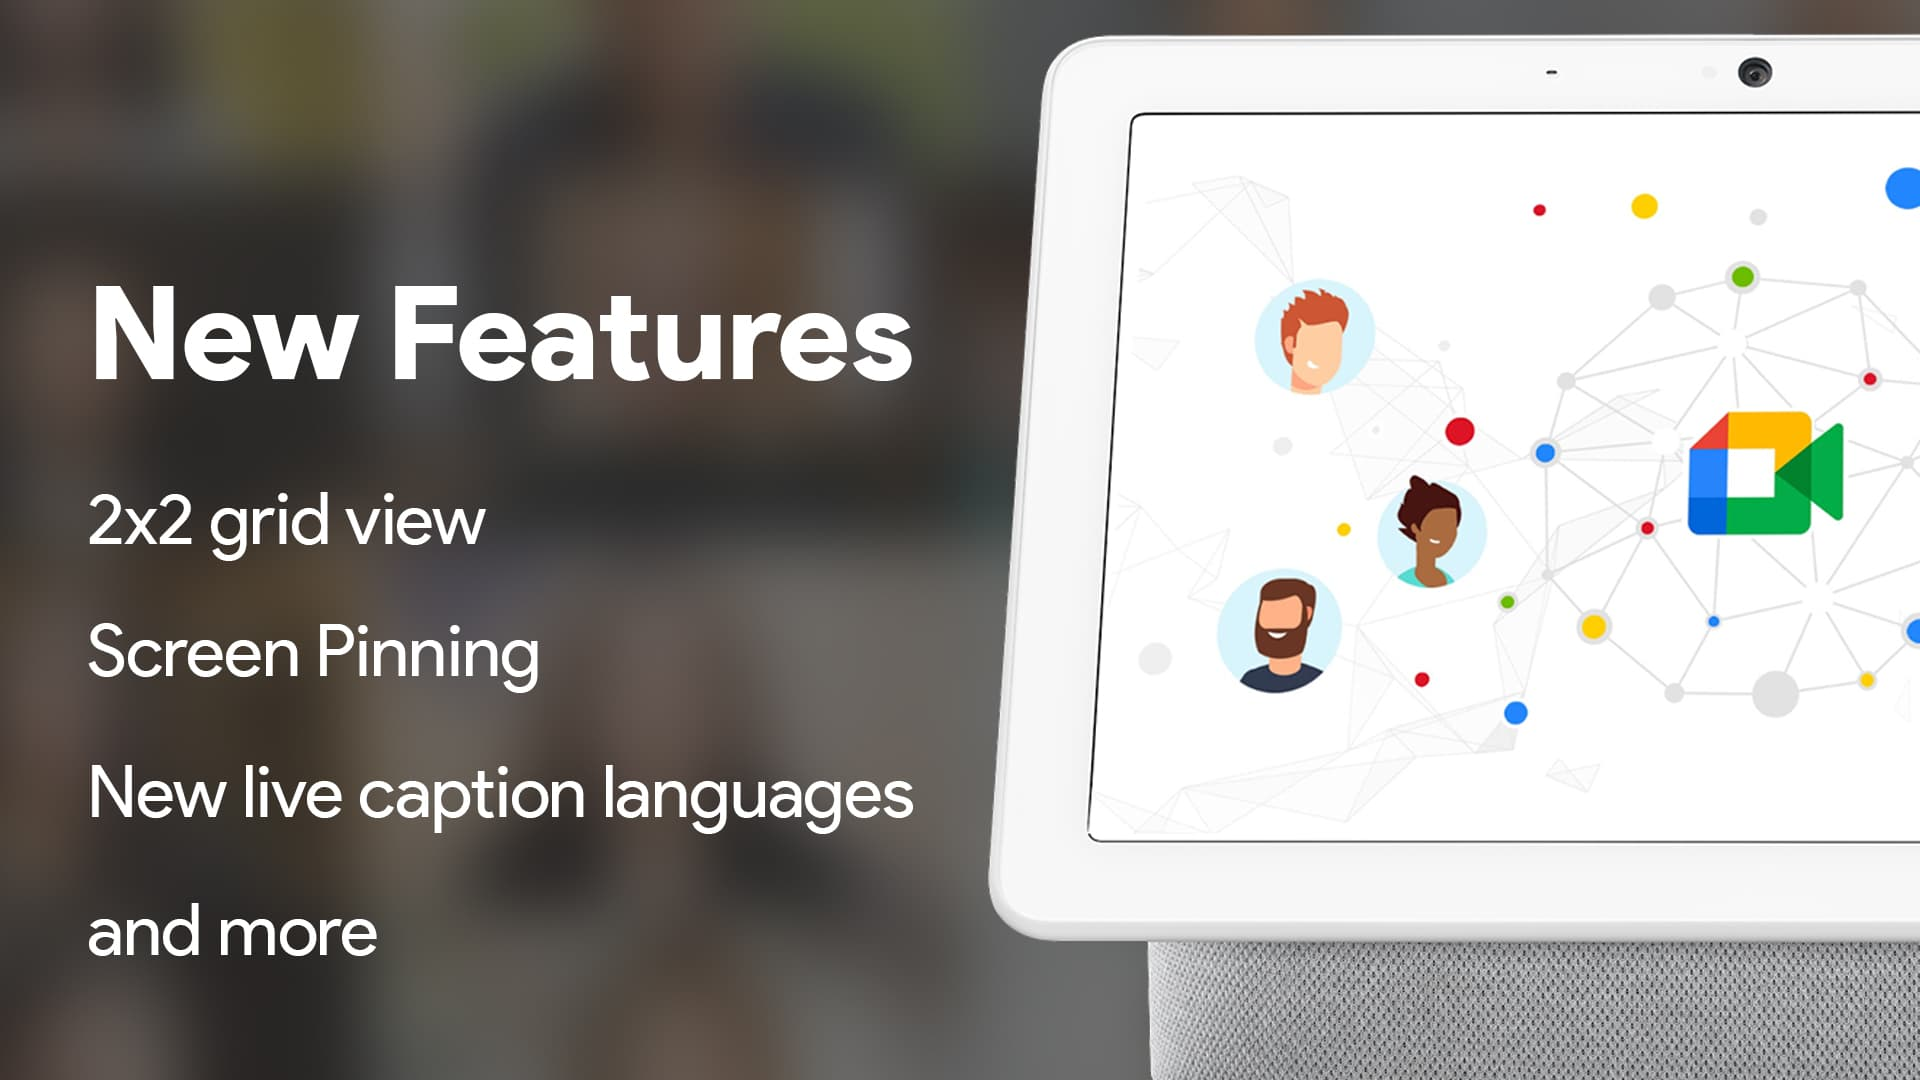 Google Meet gets more live caption languages, a redesigned Nest Hub Max experience, and more